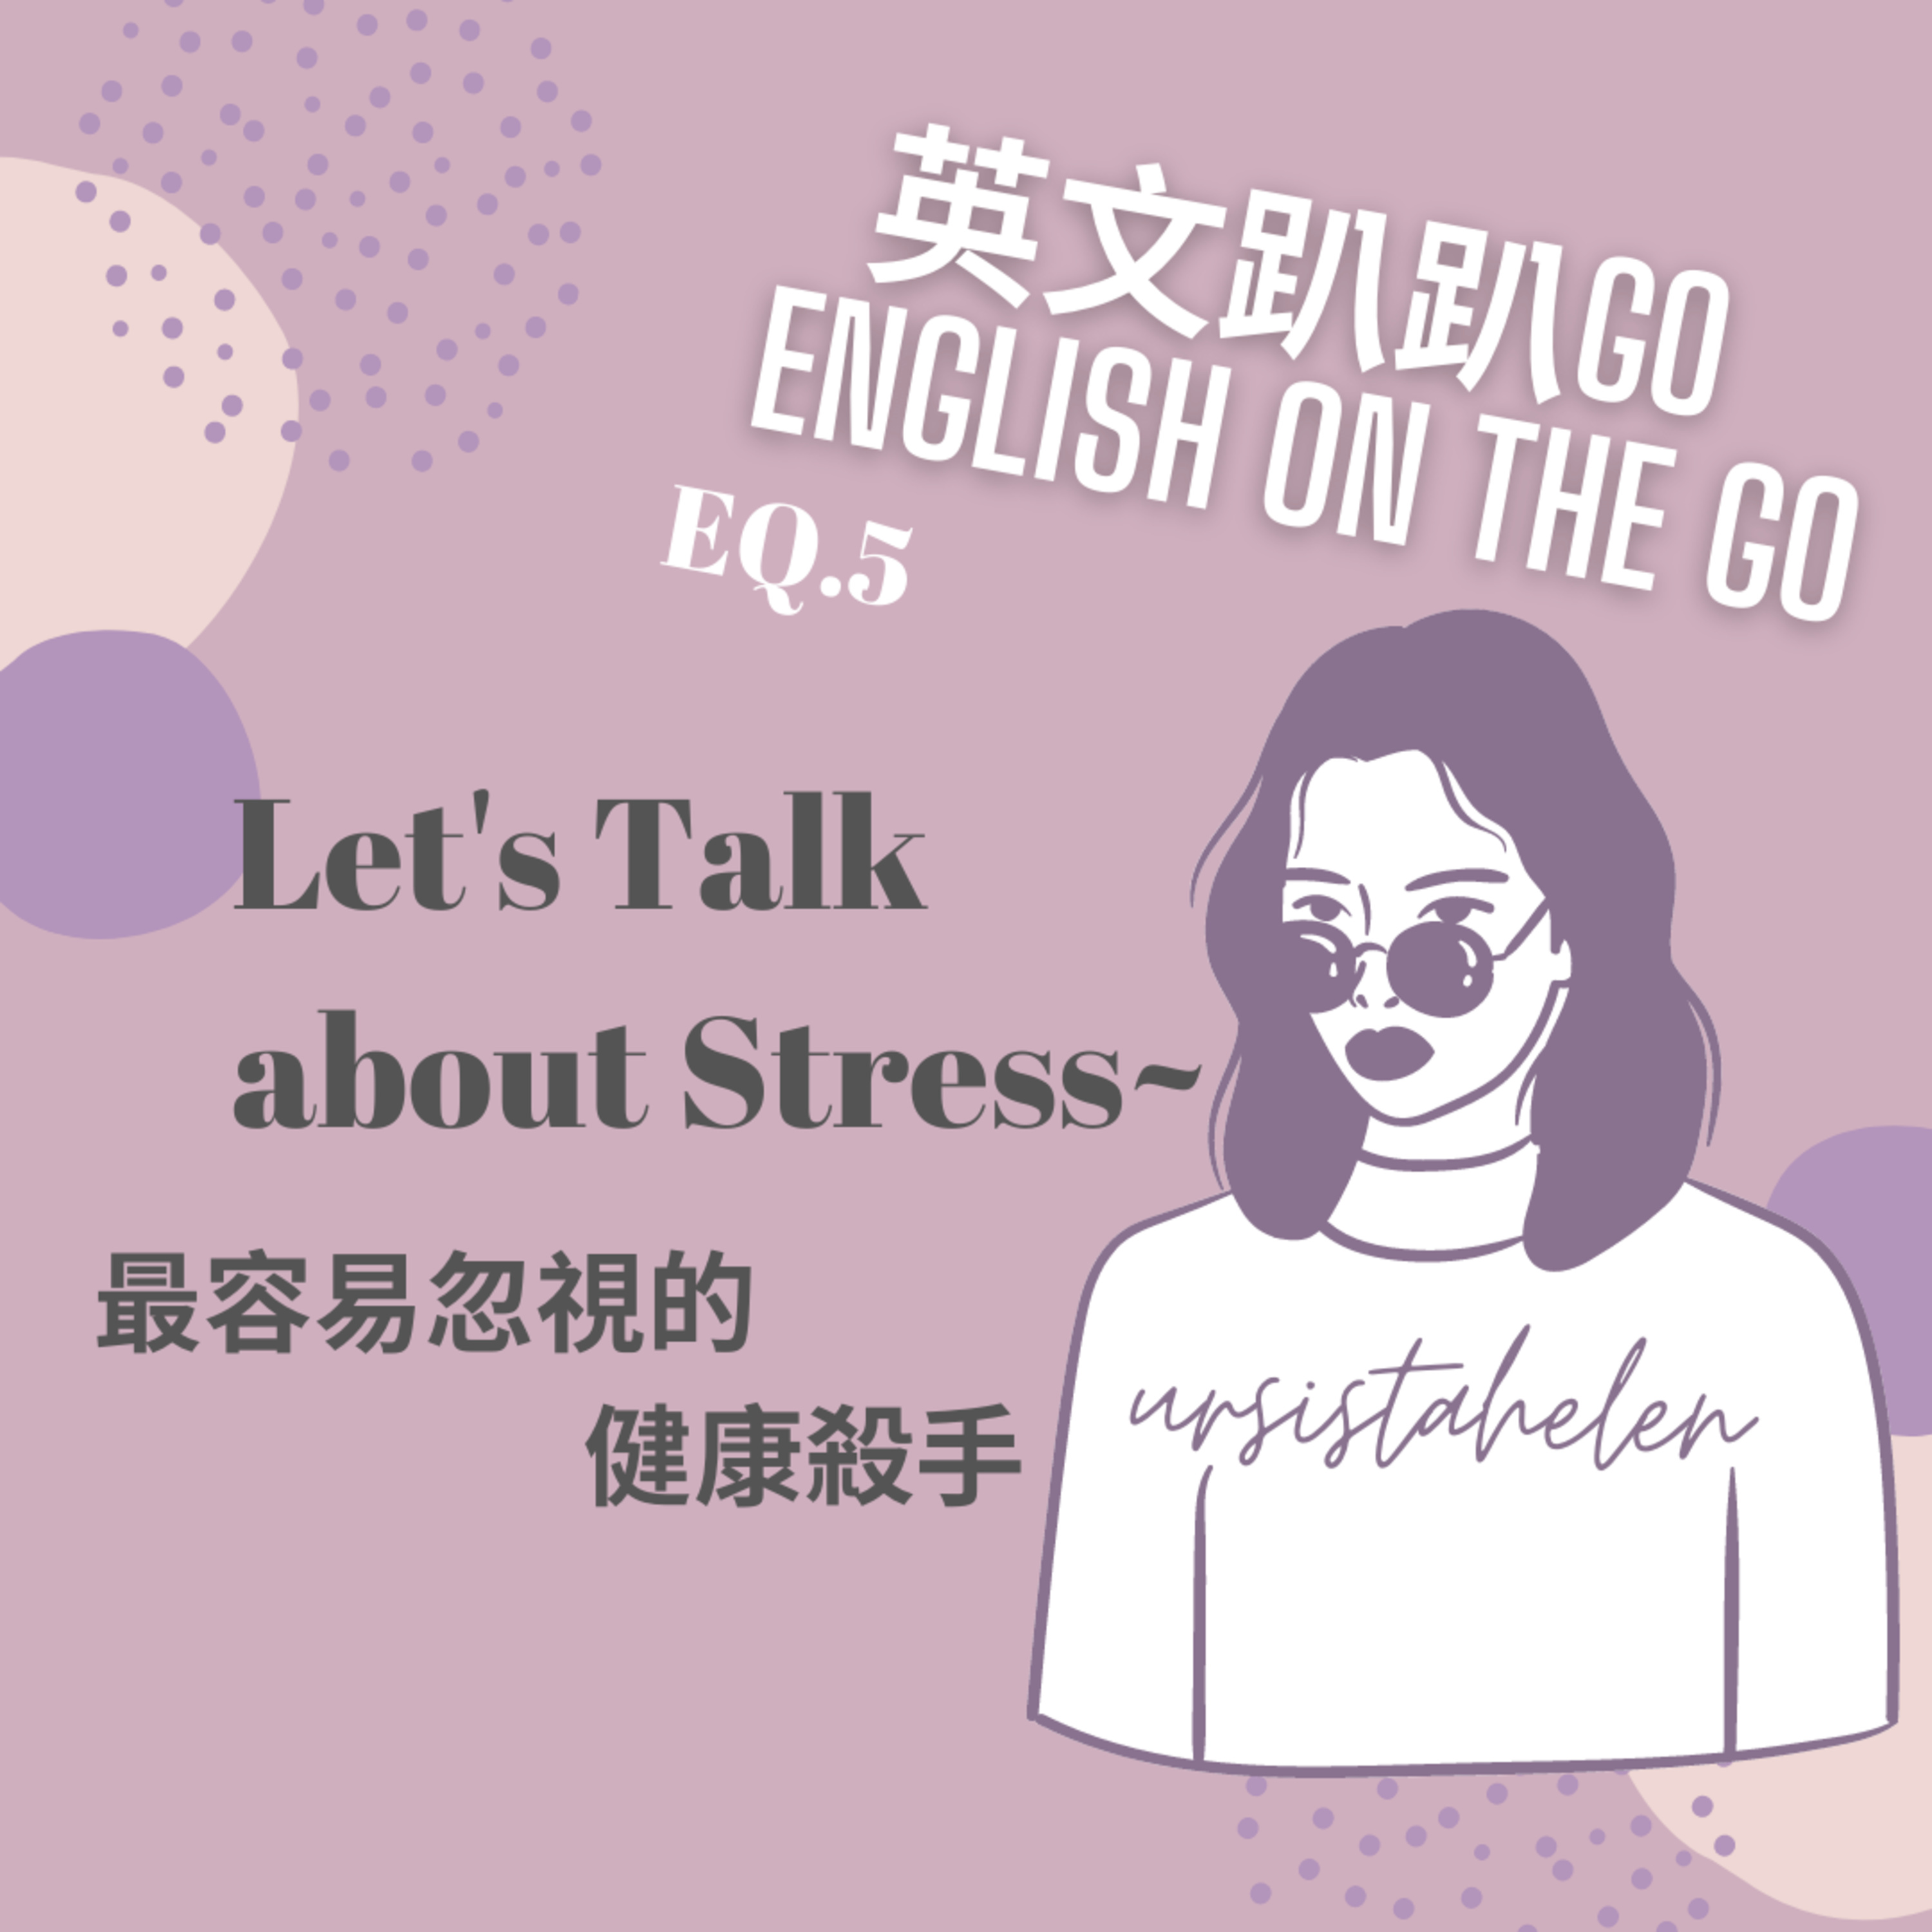 EP.5 Let's Talk about Stress~ 最容易忽視的健康殺手